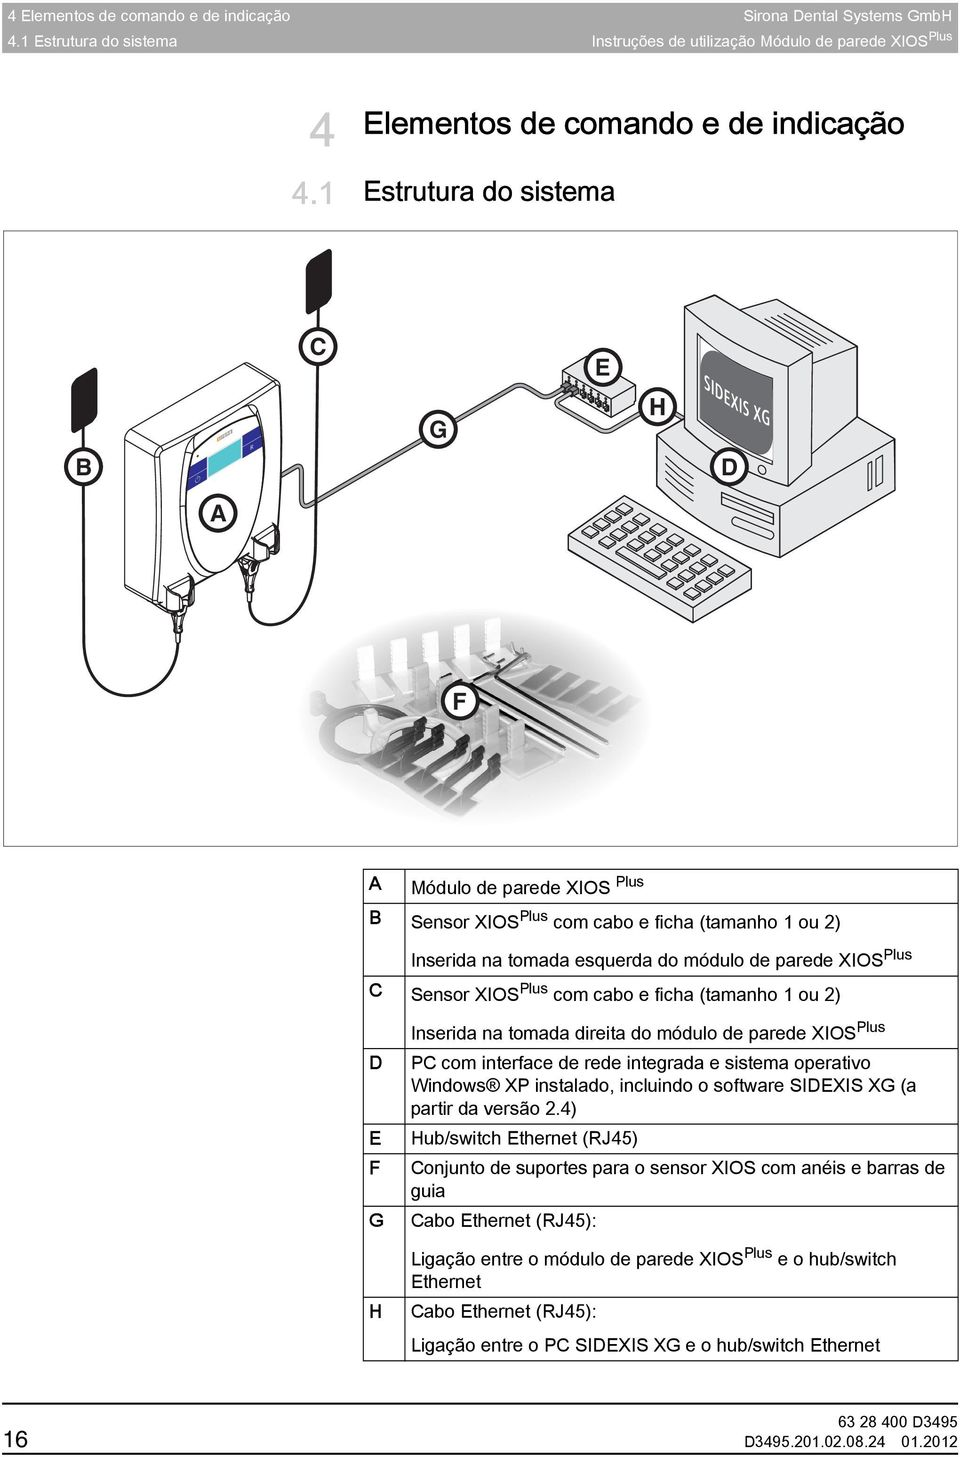 Sensor XIOS Plus com cabo e ficha (tamanho 1 ou 2) D E F G H Inserida na tomada direita do módulo de parede XIOS Plus PC com interface de rede integrada e sistema operativo Windows XP instalado,